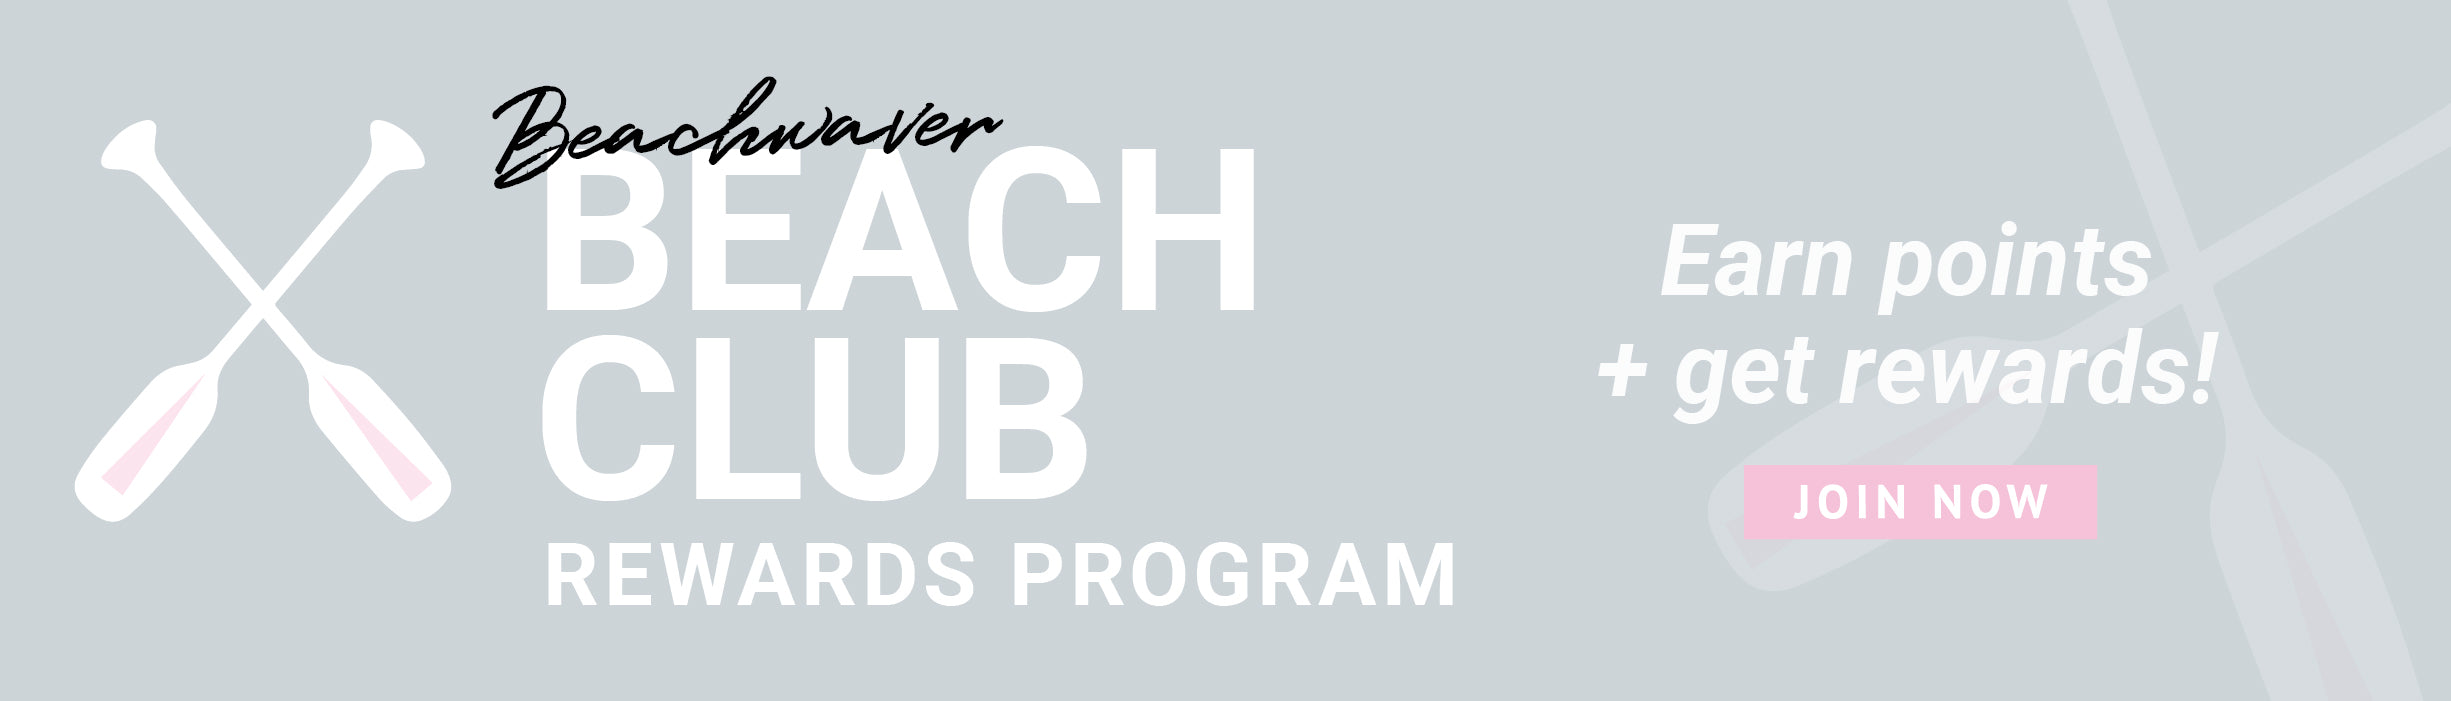 Beachwaver Beach Club Rewards Program! Earn points + get rewards! Join Now!